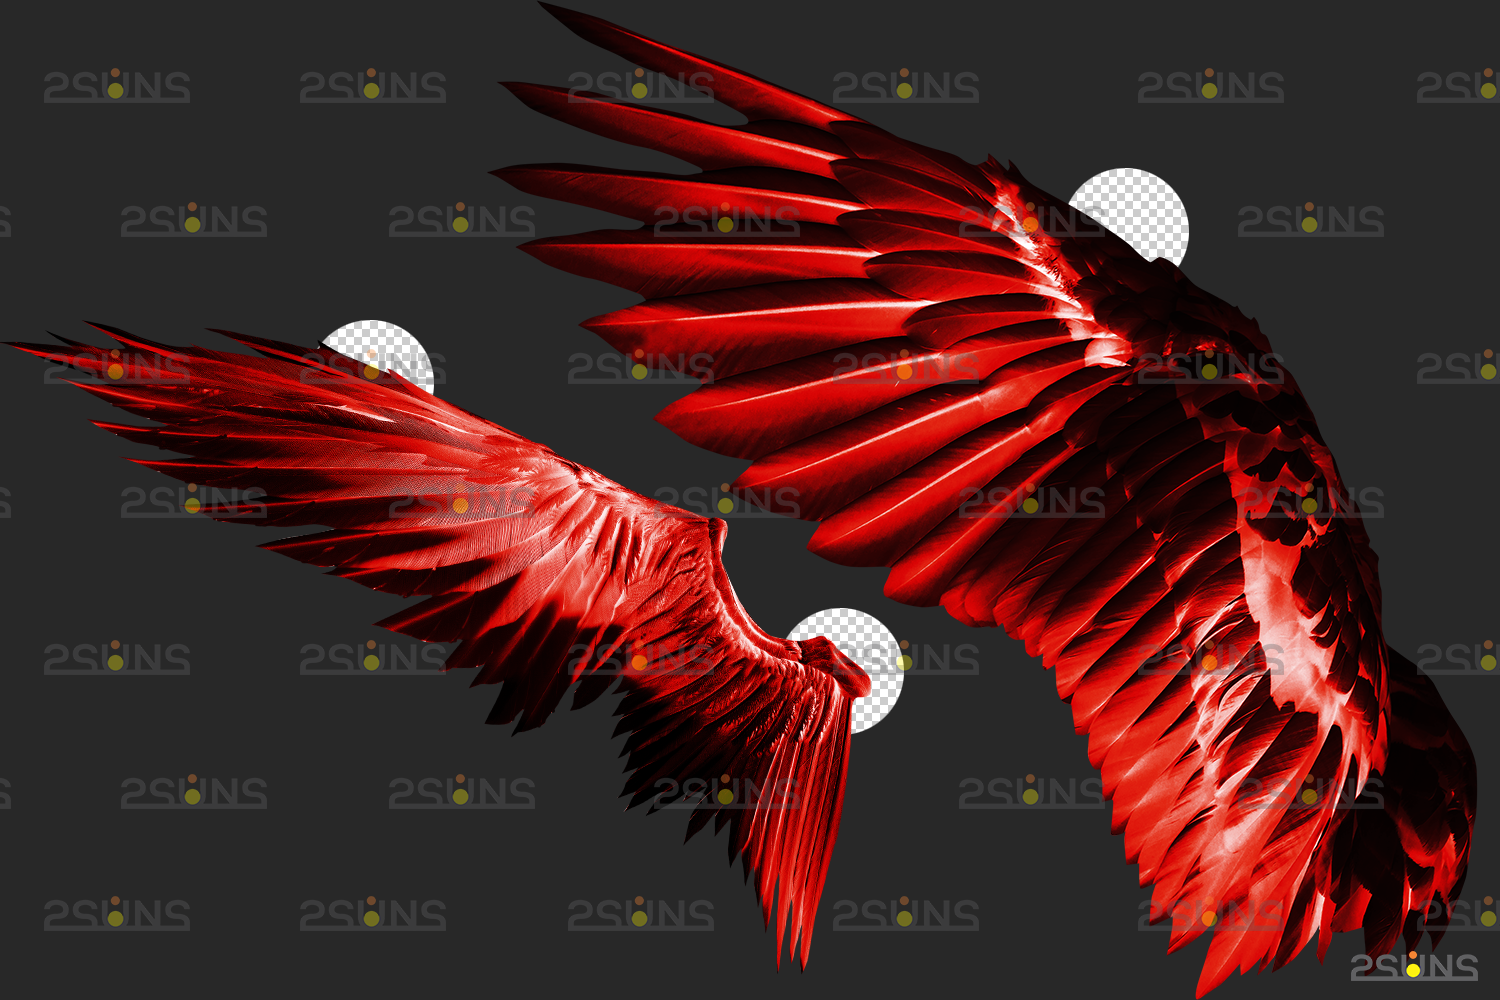 Red angel wings png & Photoshop overlay: Digital angel wings overlay, Digital backdrops wings, Fire - 006 59 -